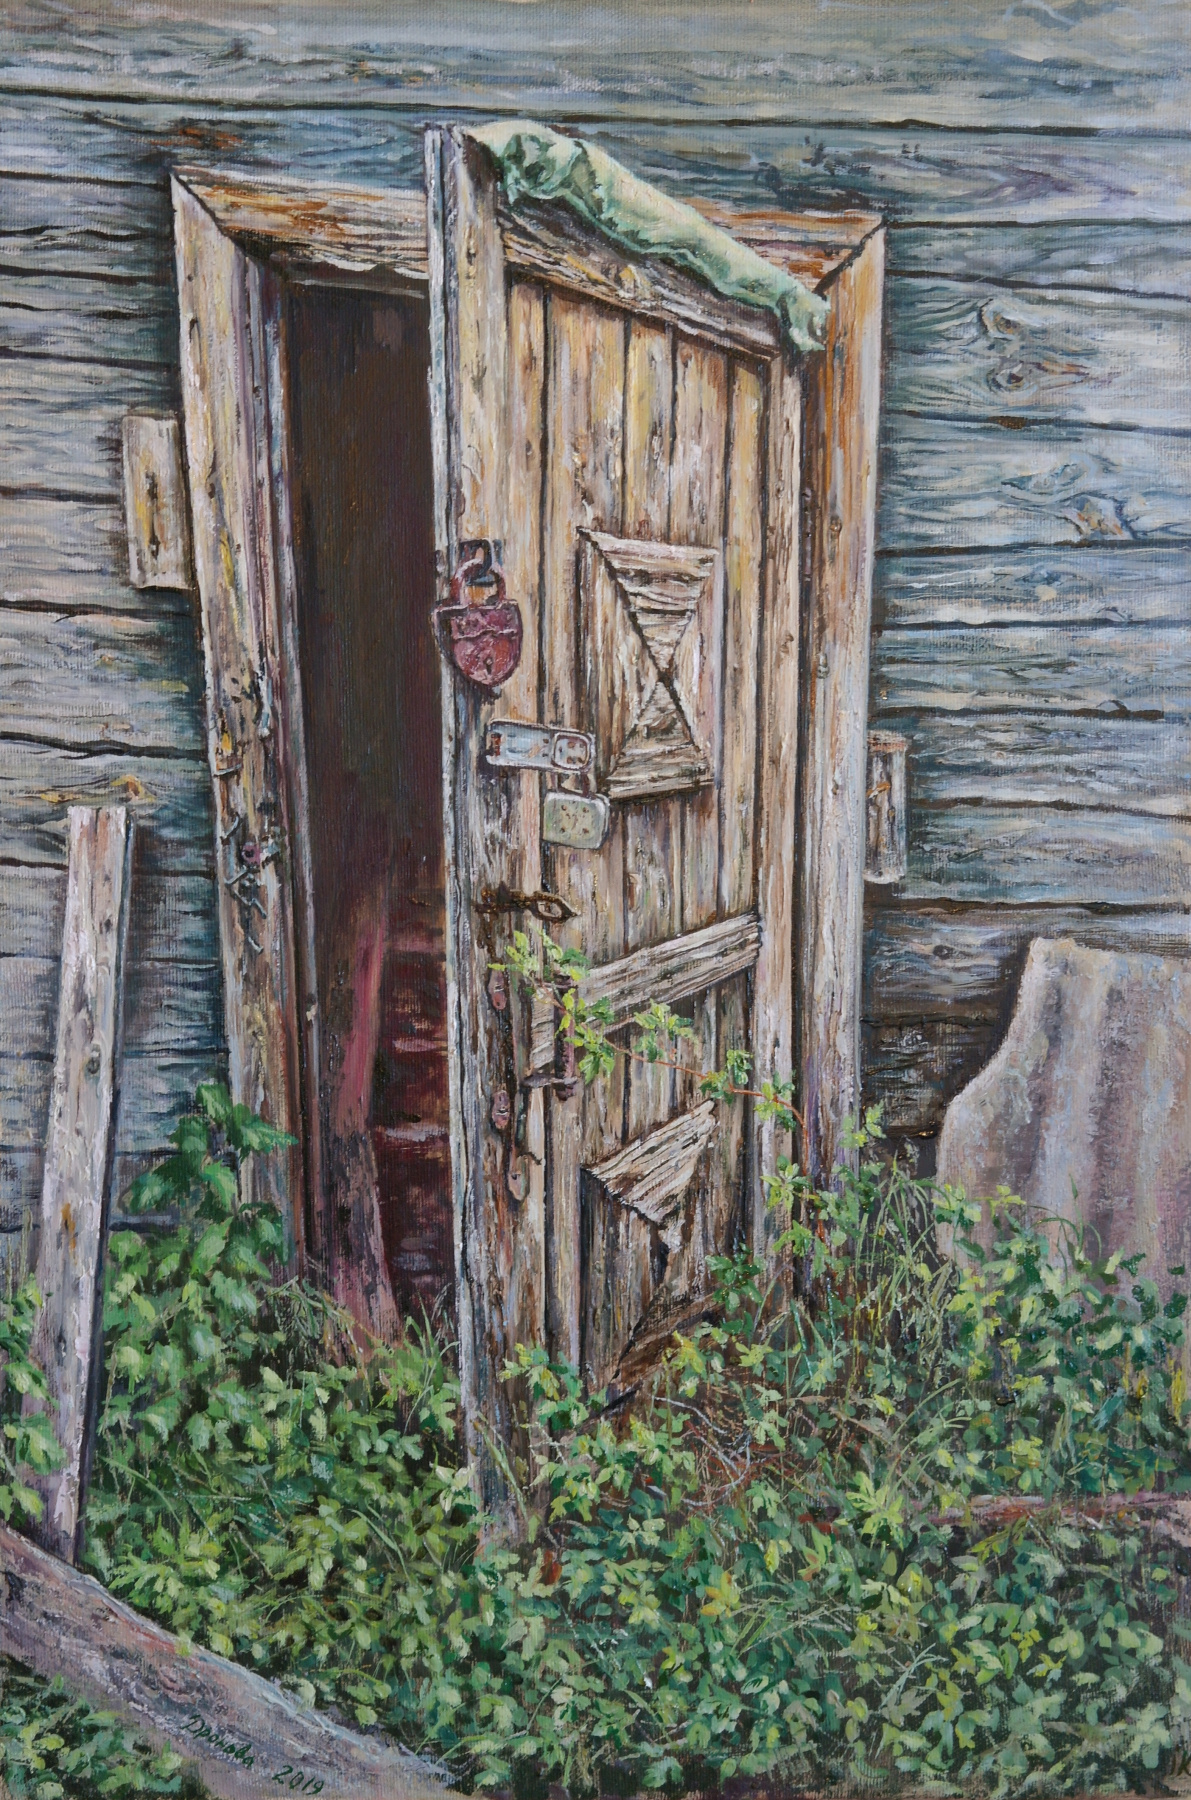 Irina Viktorovna Korotoyakskaya (Dronova). Door to the past